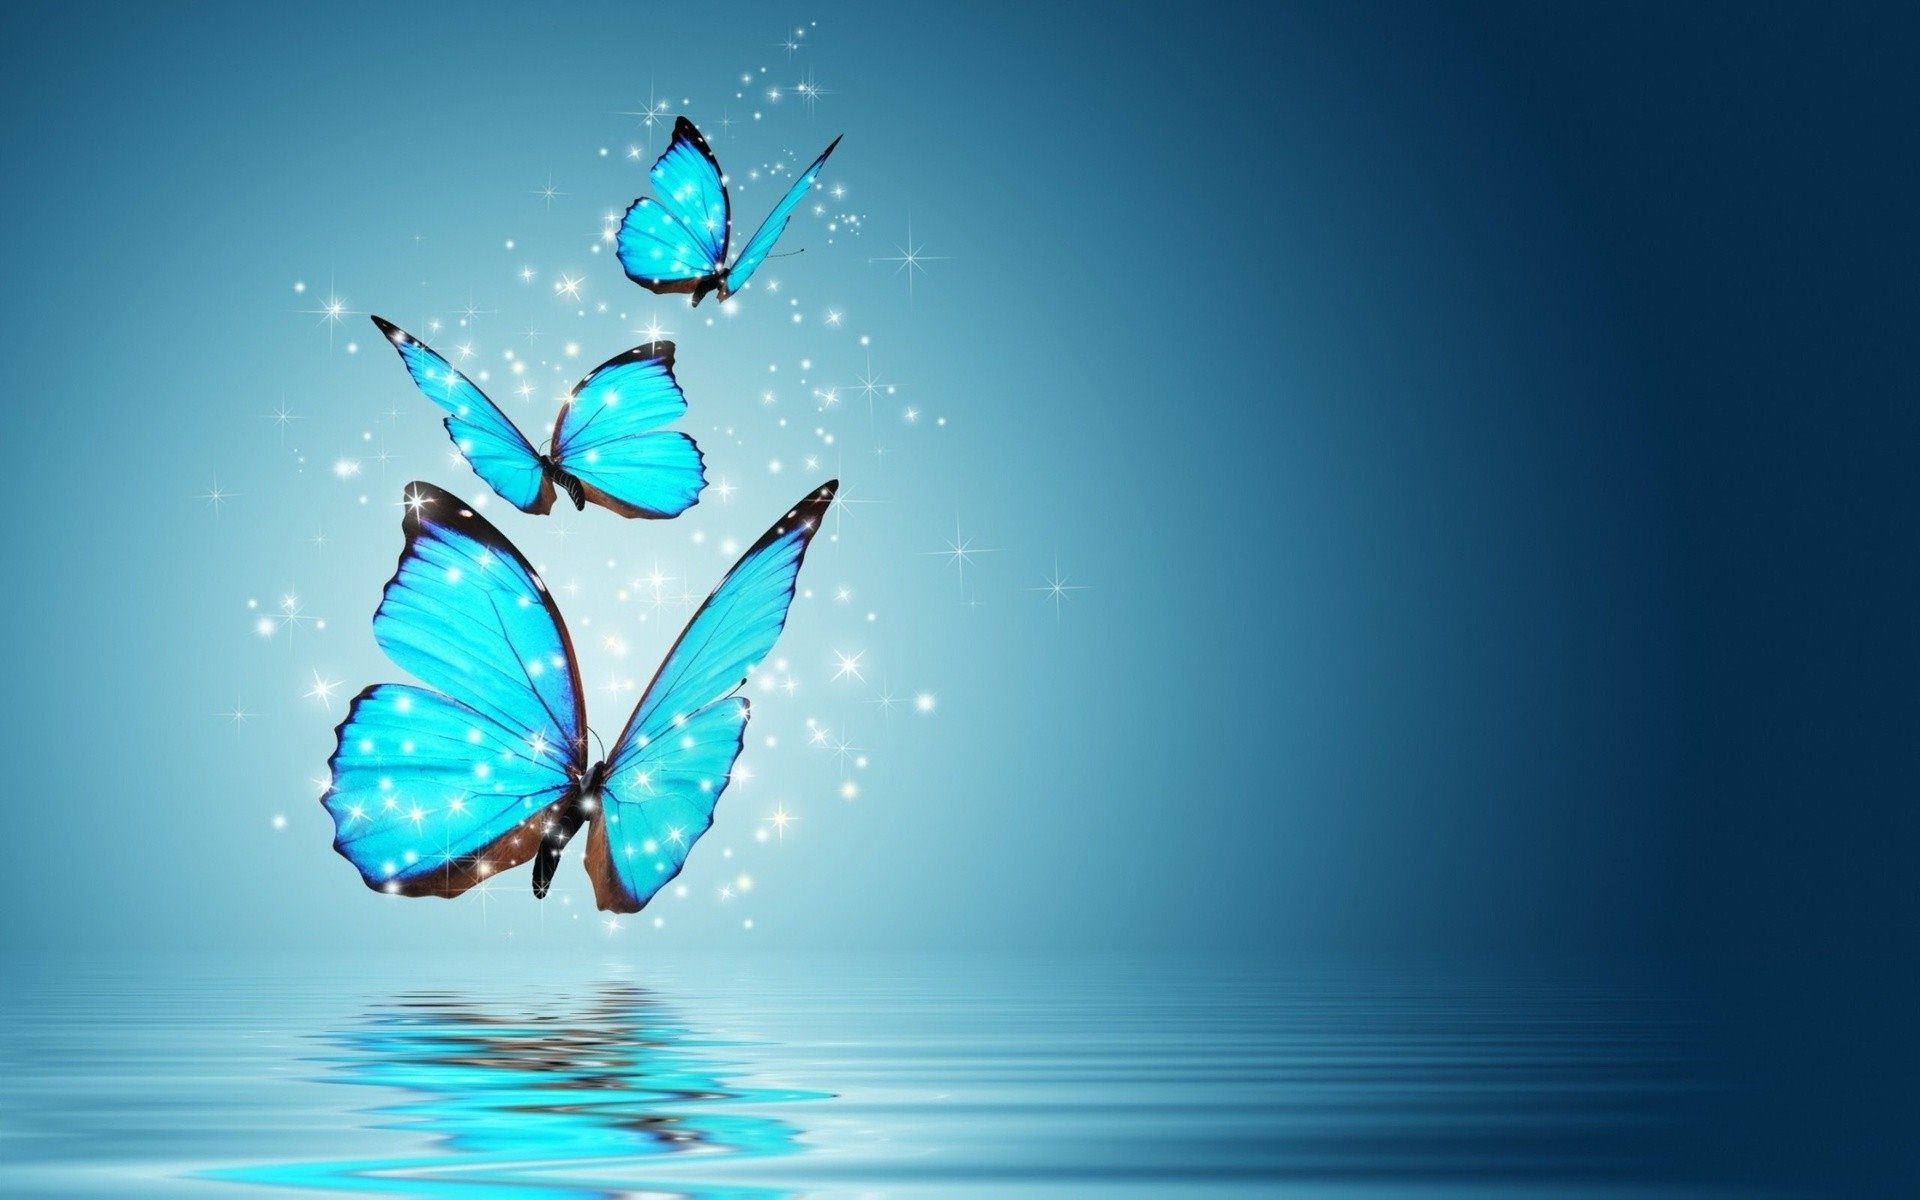 Butterfly Wallpaper 19201200 Butterfly Wallpaper Backgrounds Blue Butterfly Wallpaper Butterfly Background